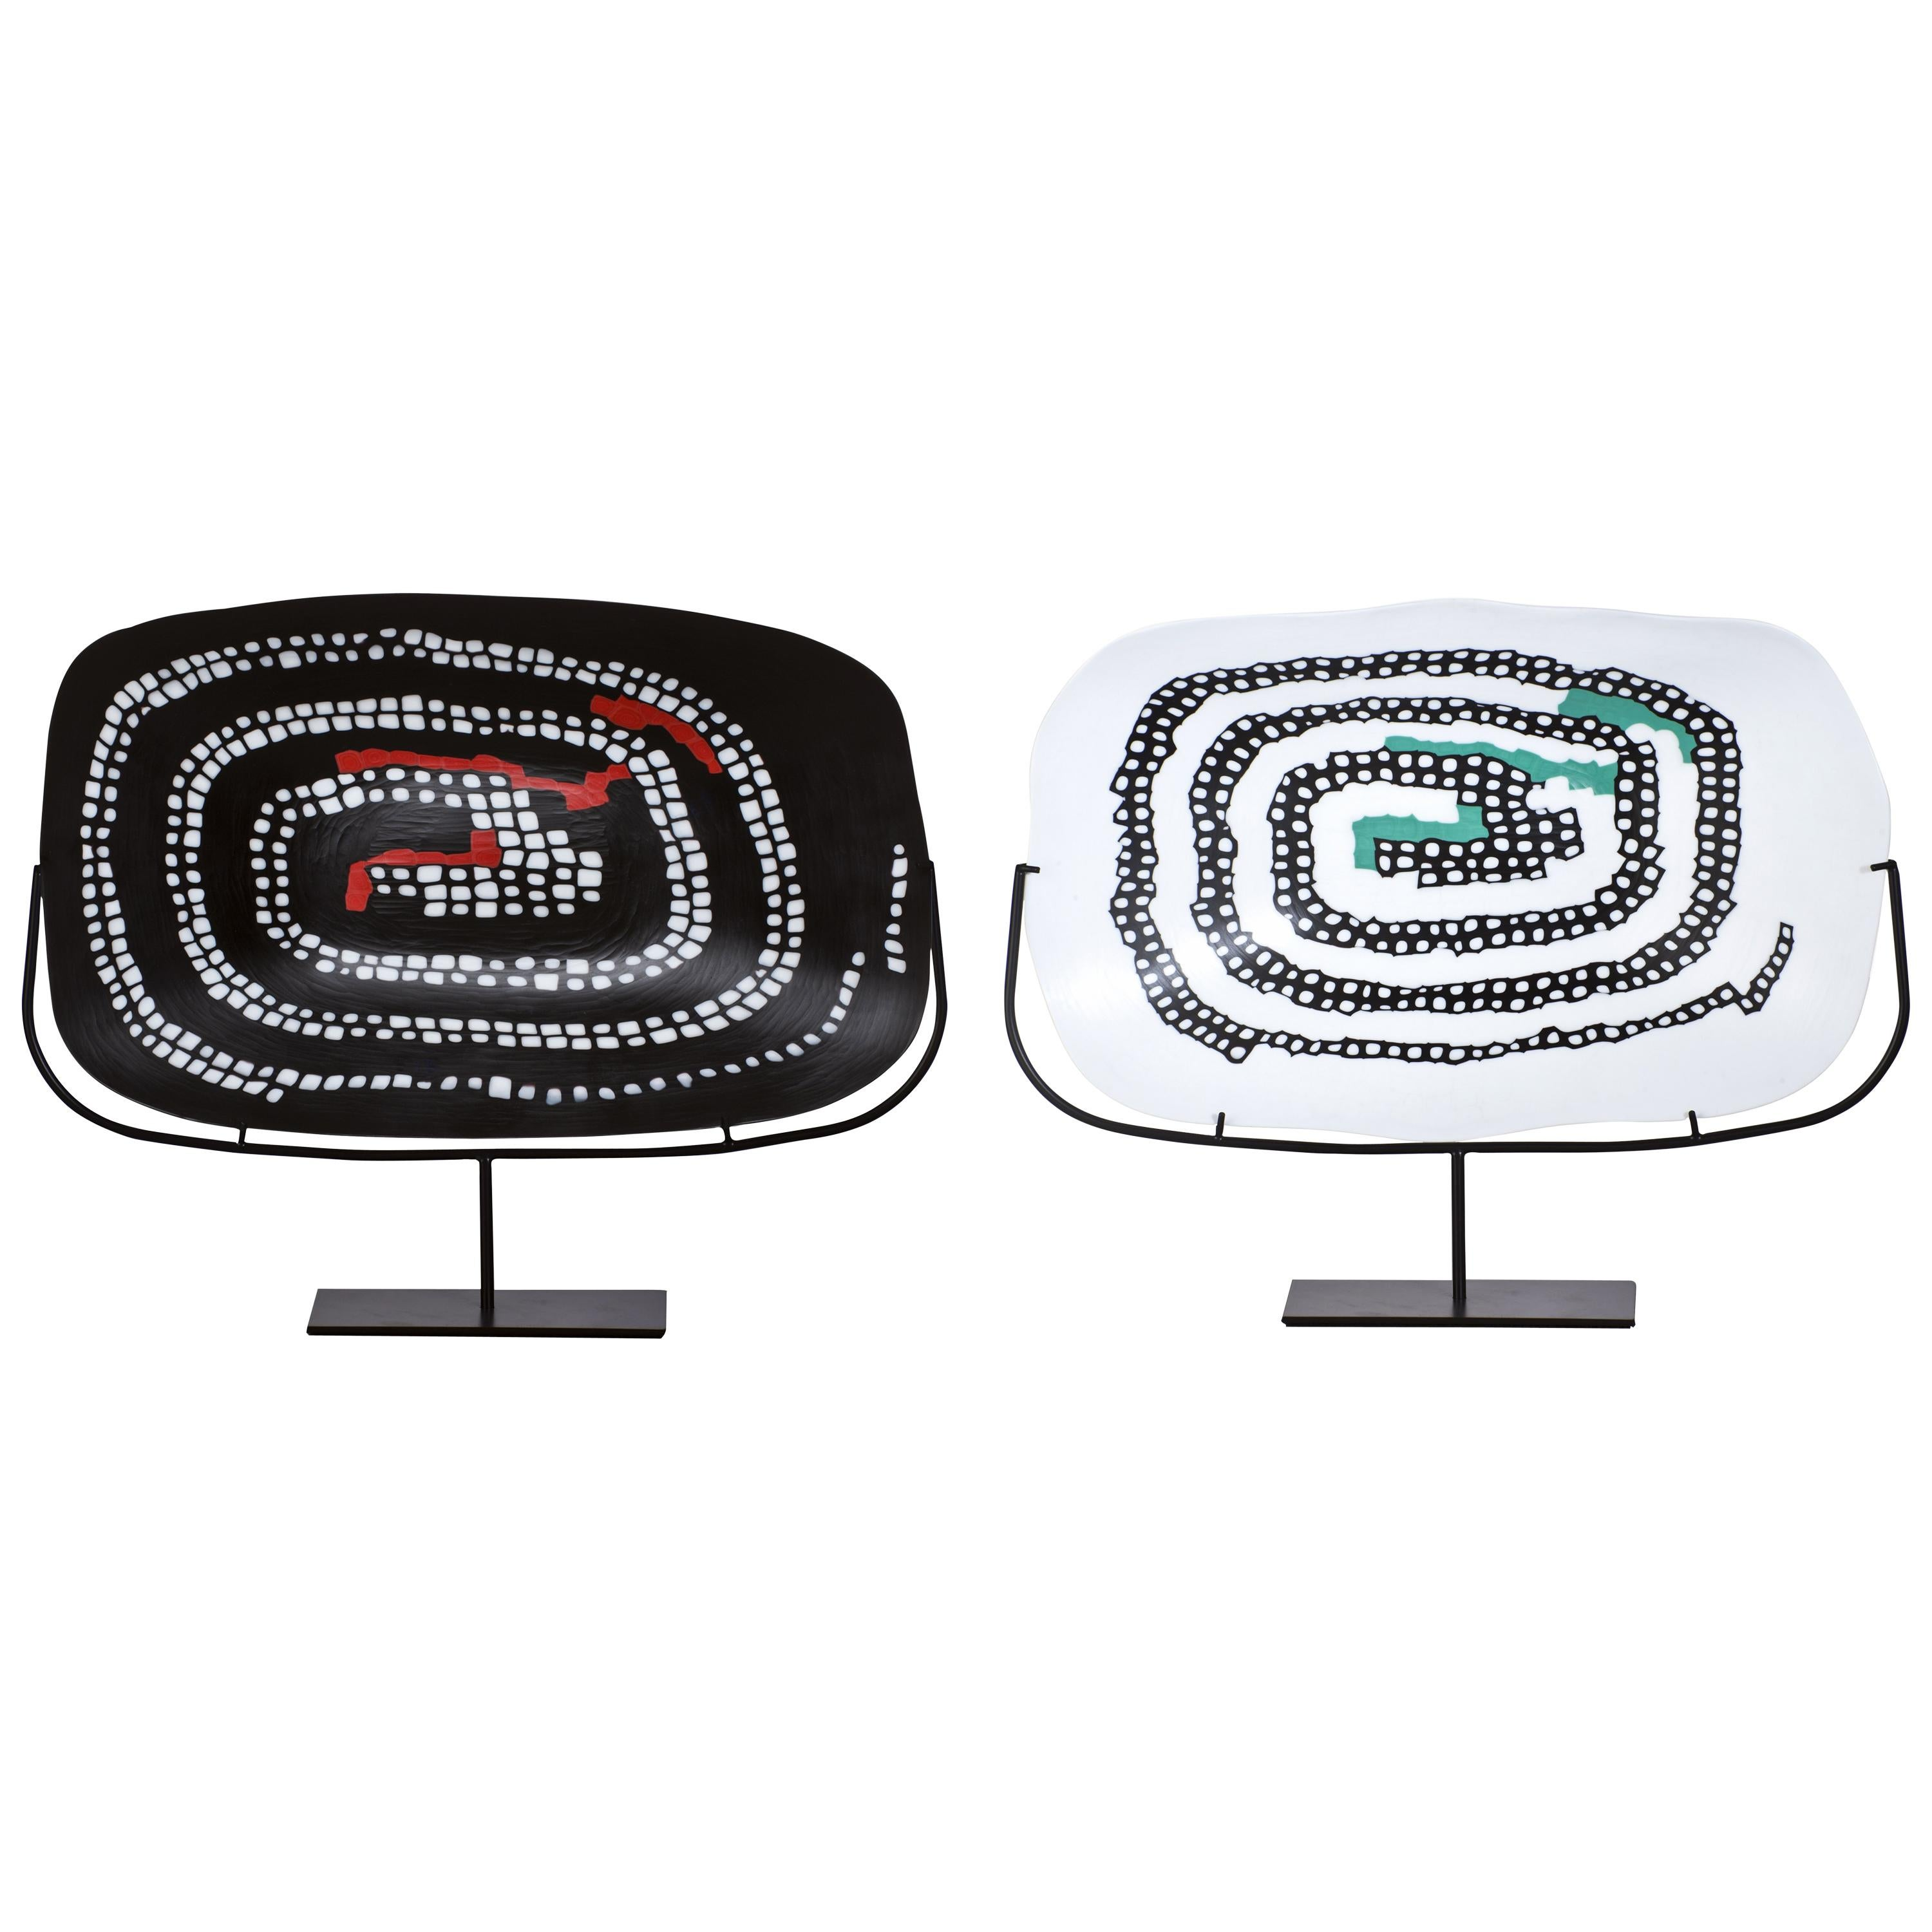 Venini Serpente Plate in Black with Coral Red Detail by Carlo Scarpa